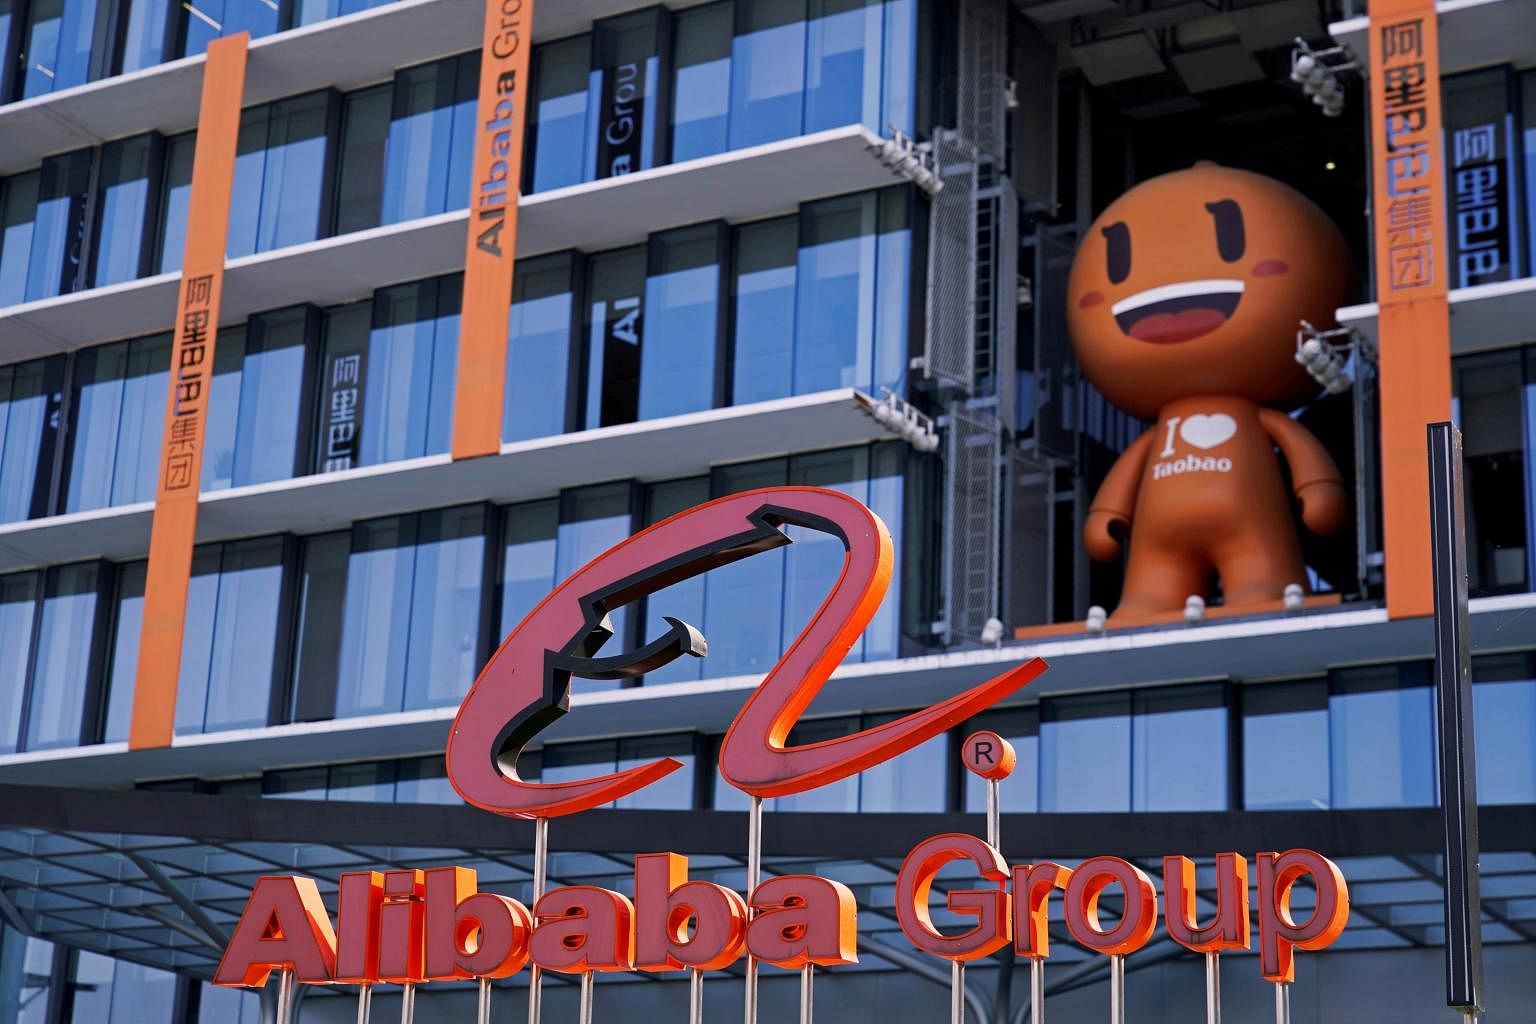 Alibaba, once a fund darling, dumped by some Wall Street titans, Companies & Markets News & Top Stories - The Straits Times